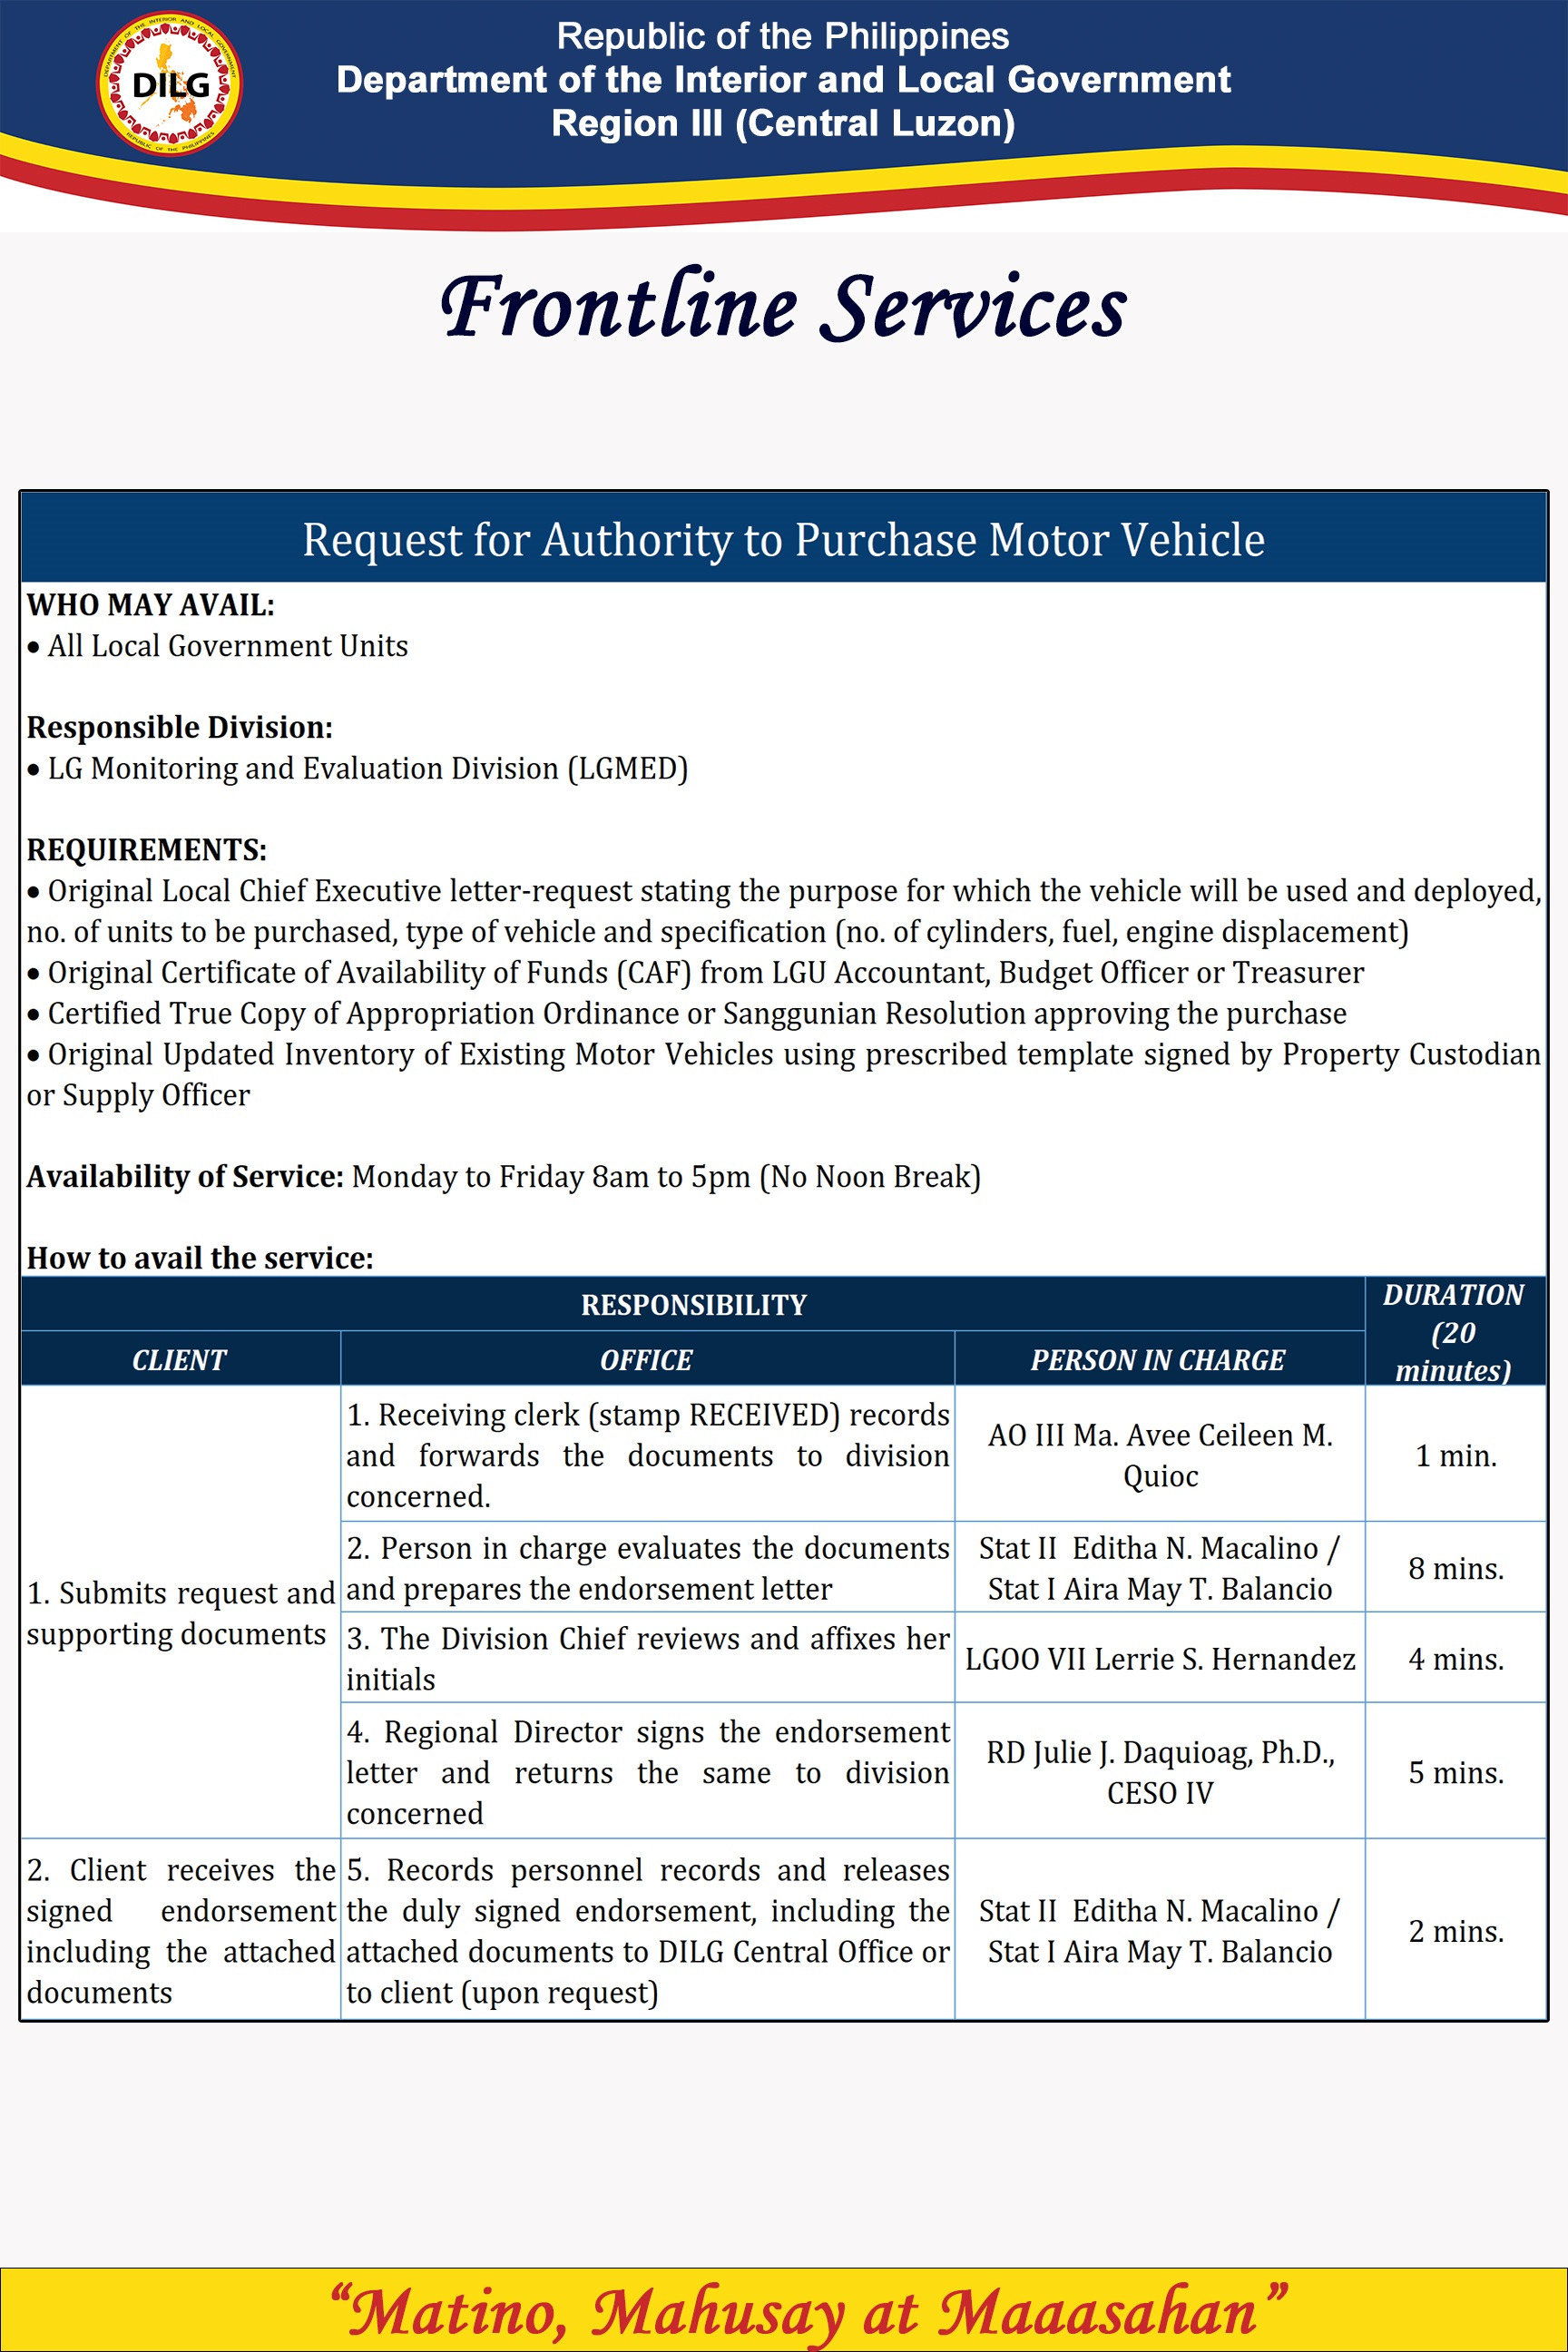 Request for Authority to Purchase Motor Vehicle